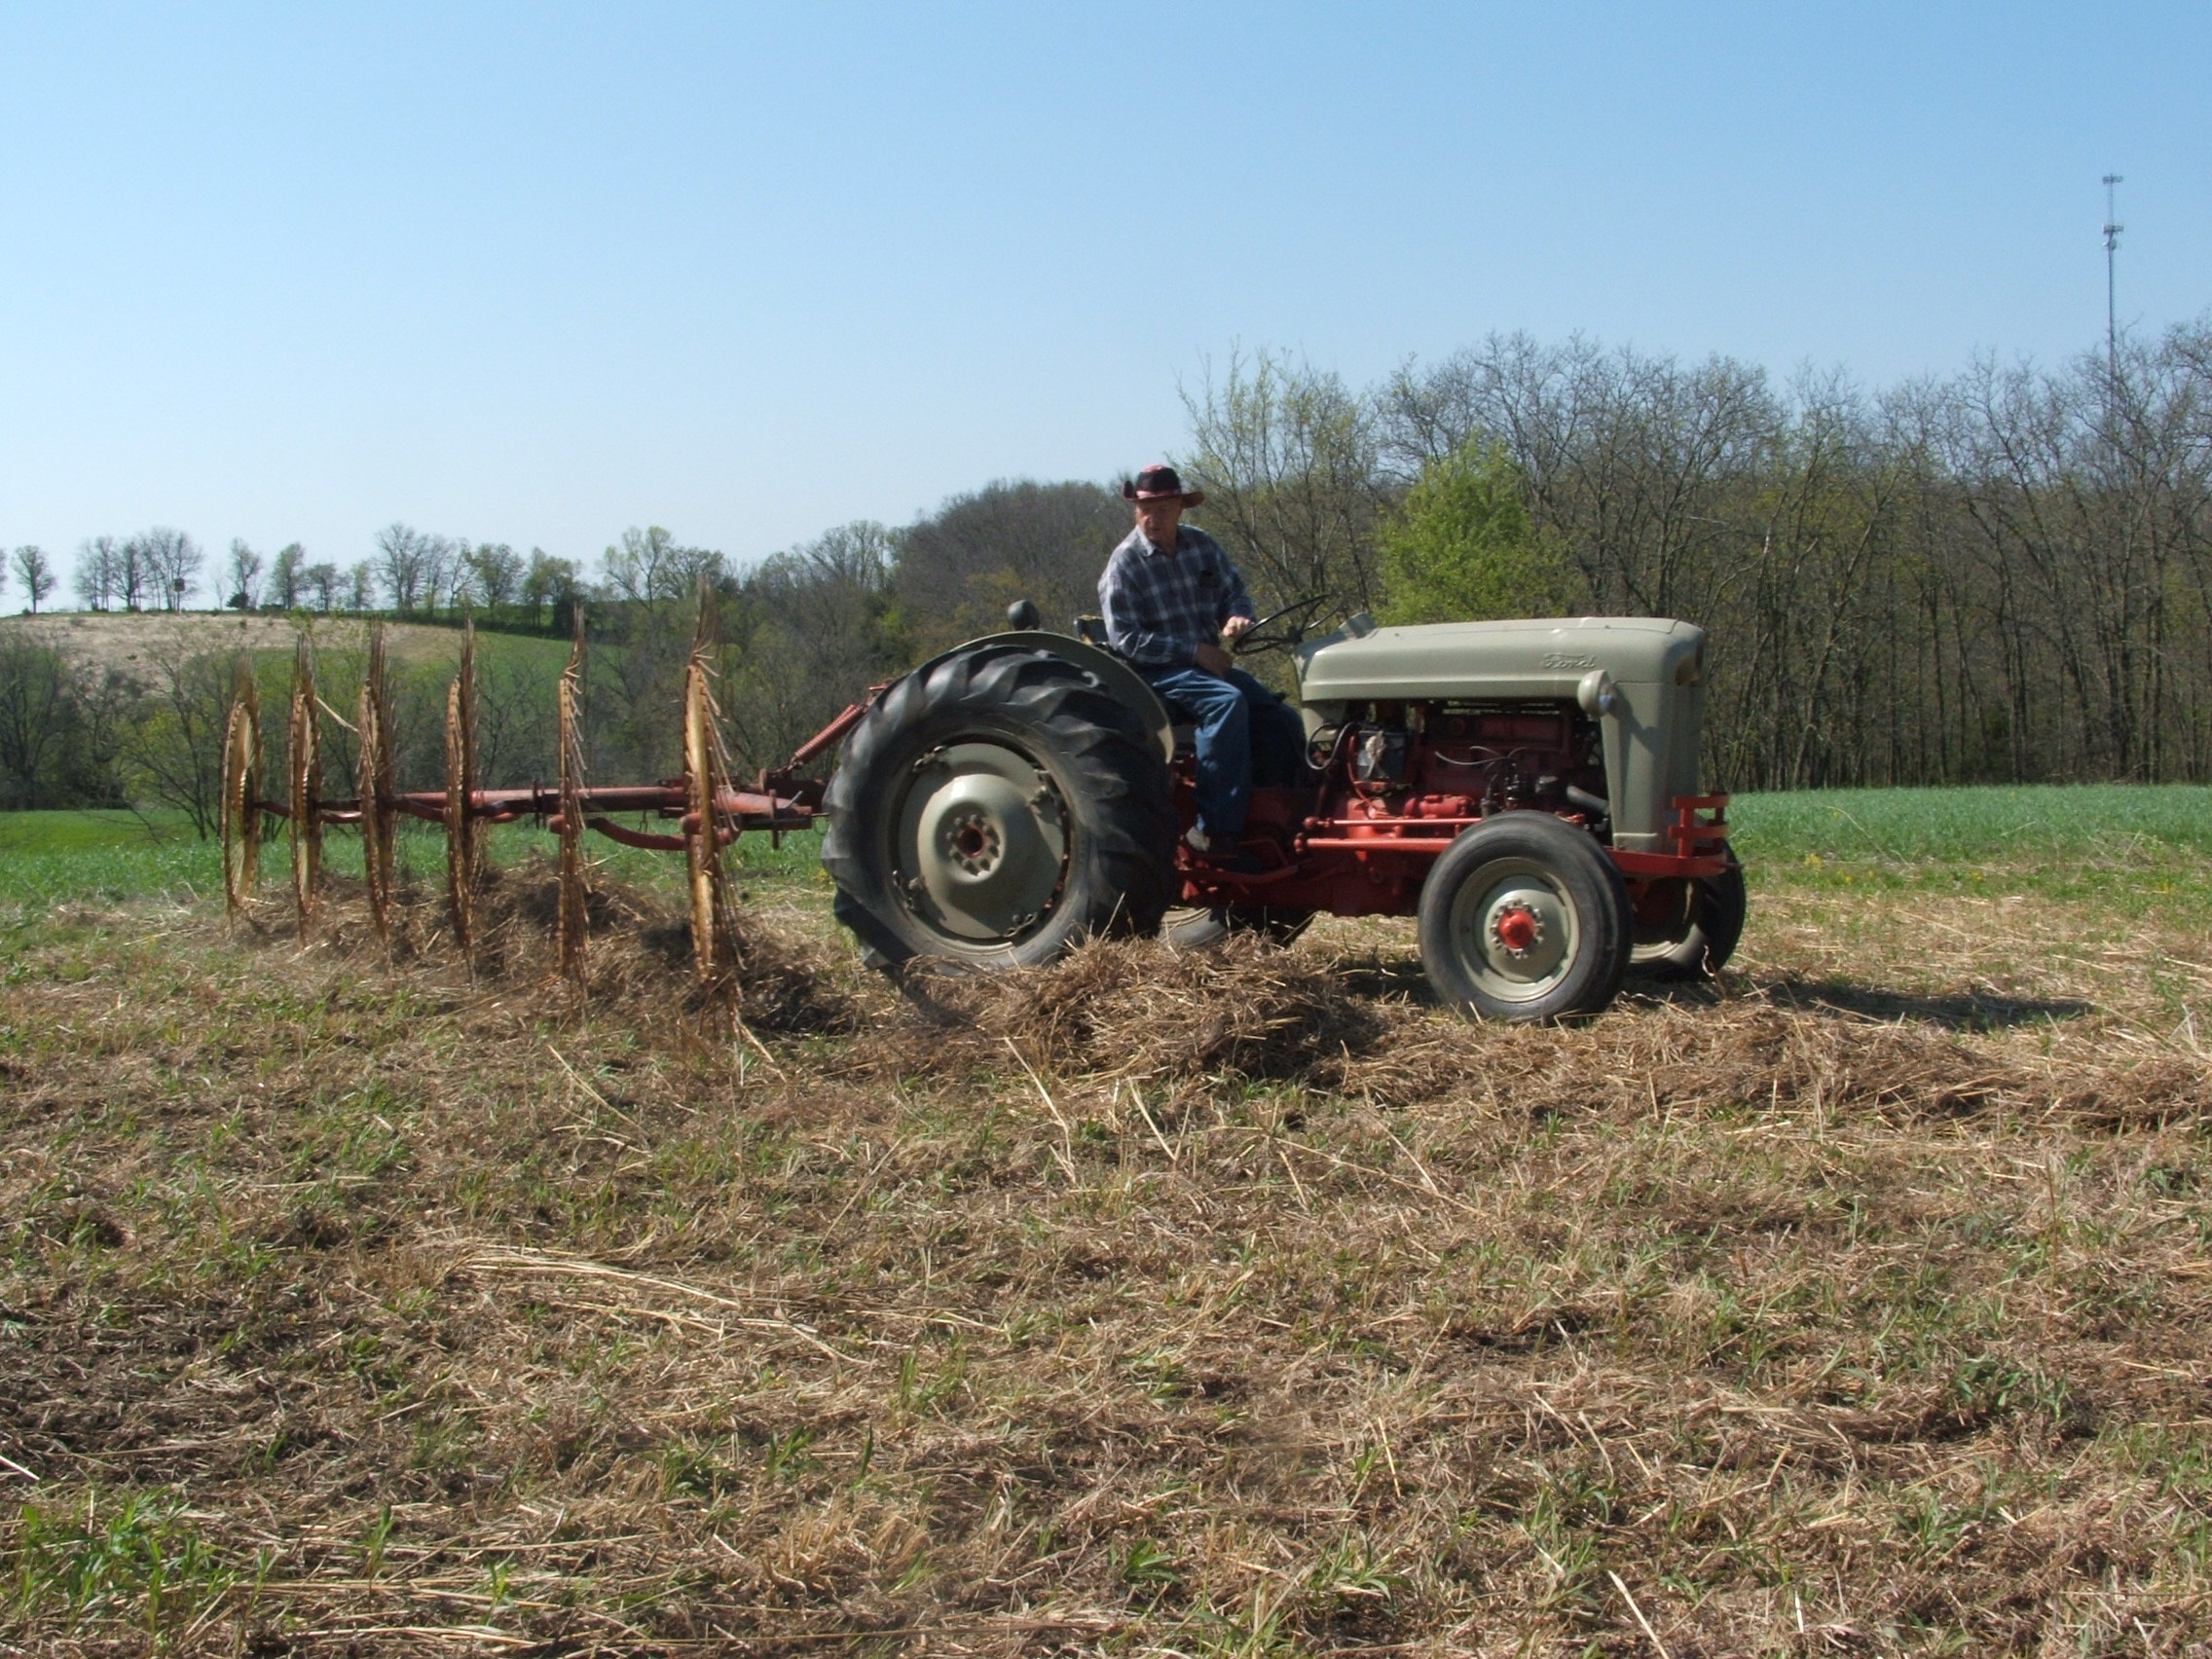 My dad raking off the mowed switch grass preparing a seed bed for expanding a food plot.